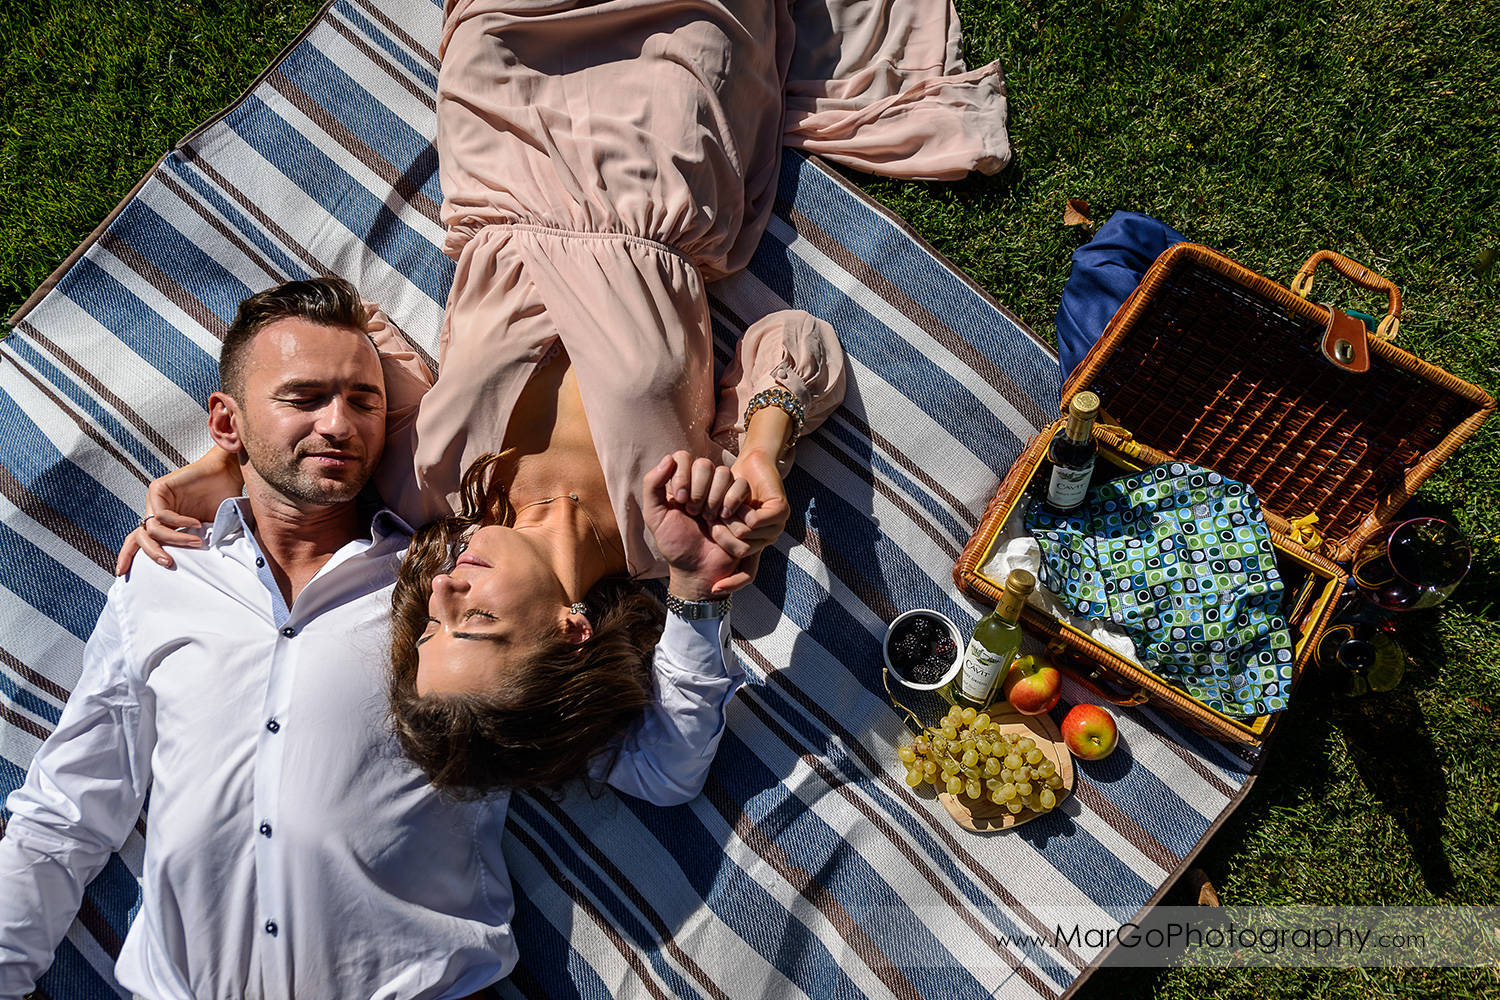 man in white shirt and woman in pink dress lying on the blue blanket next to picnic basket during Napa Valley engagement session at Frank Family Vineyards in Calistoga